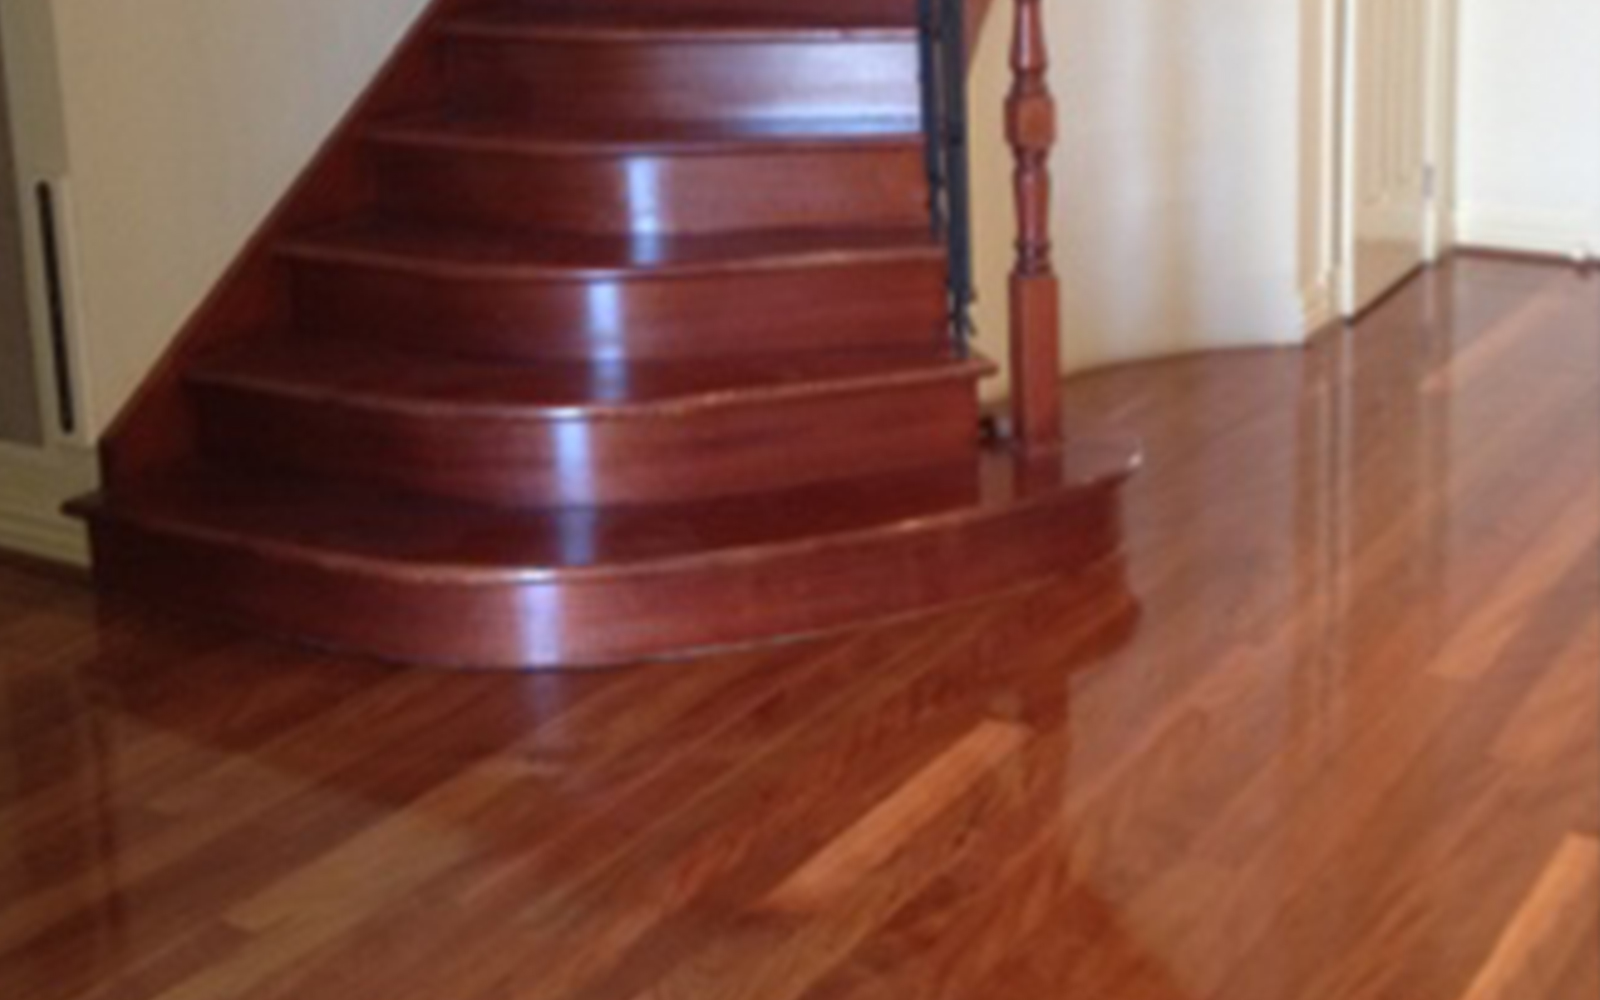 Jarrah Floorboards And Staircase - Semigloss Finish